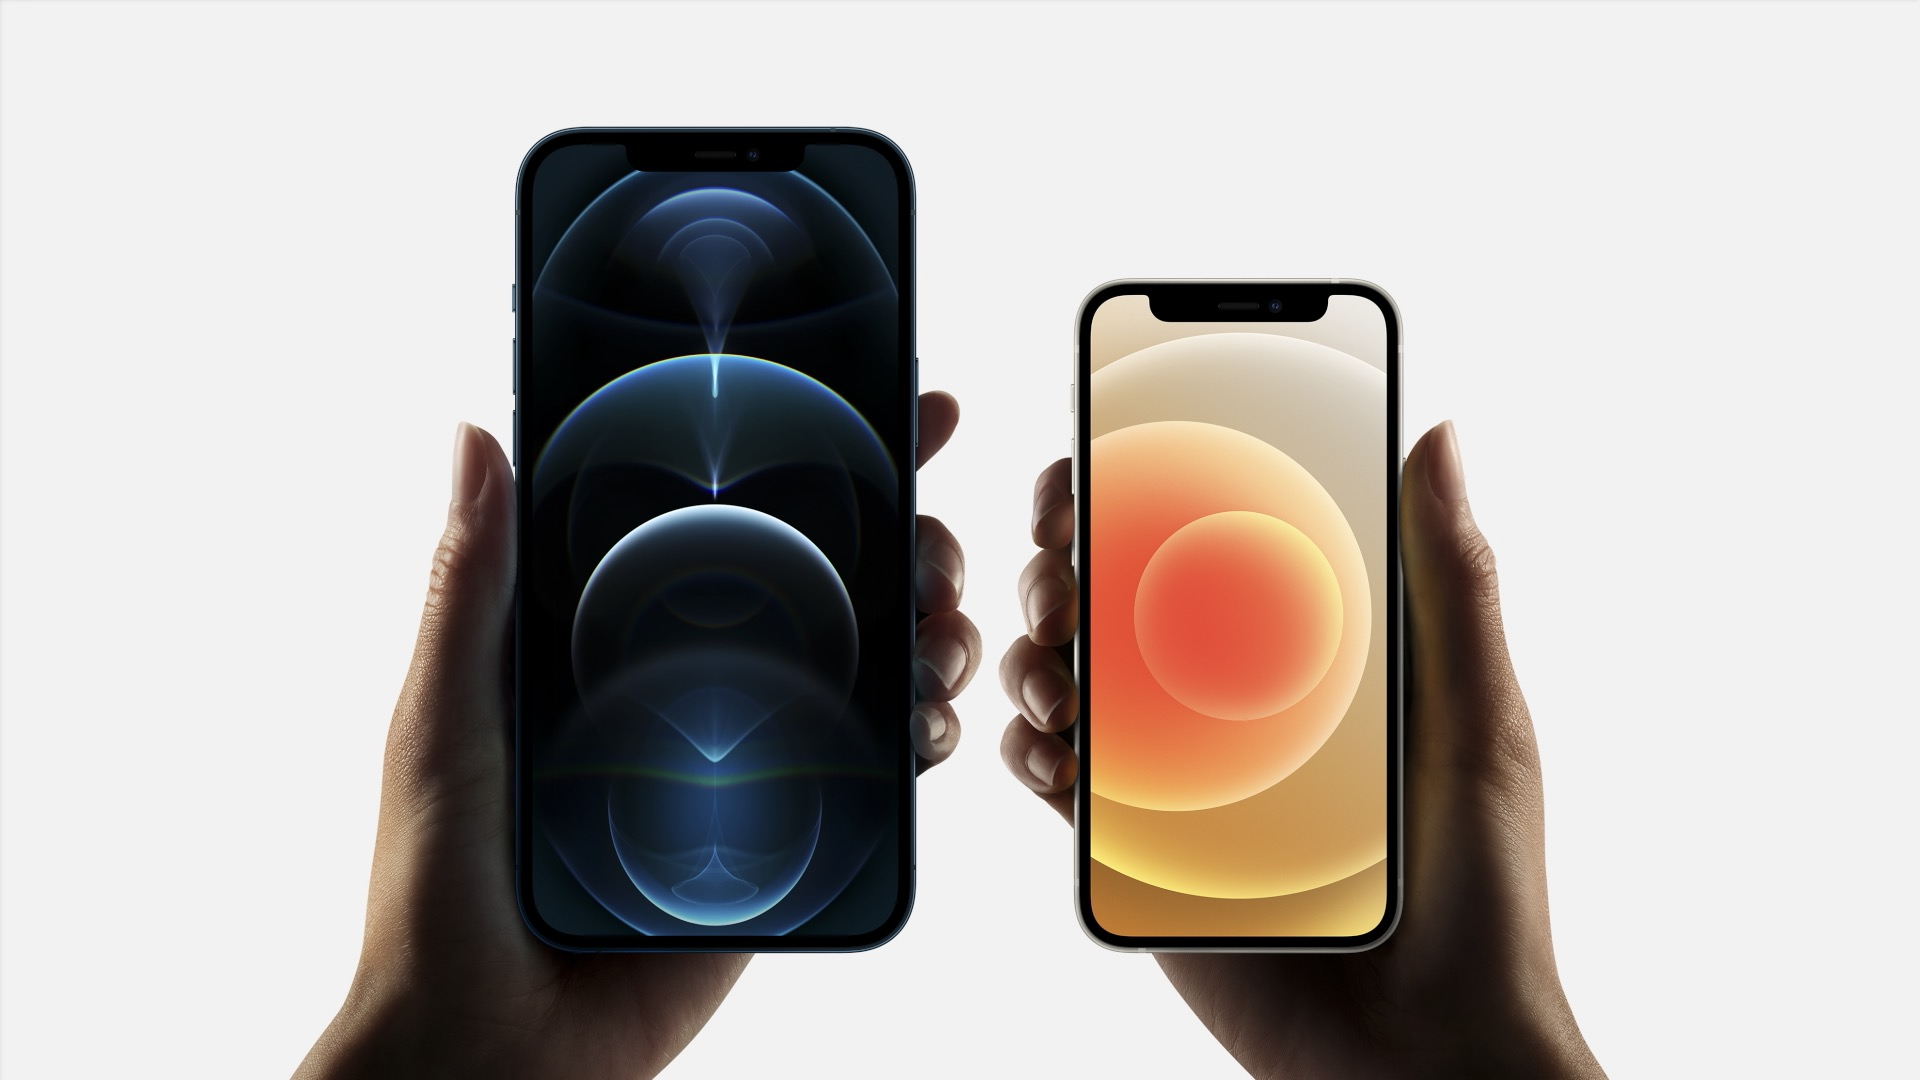 While iPhone 12 mini Sales Lag, the iPhone 12 Pro Is Eating Huawei's Lunch